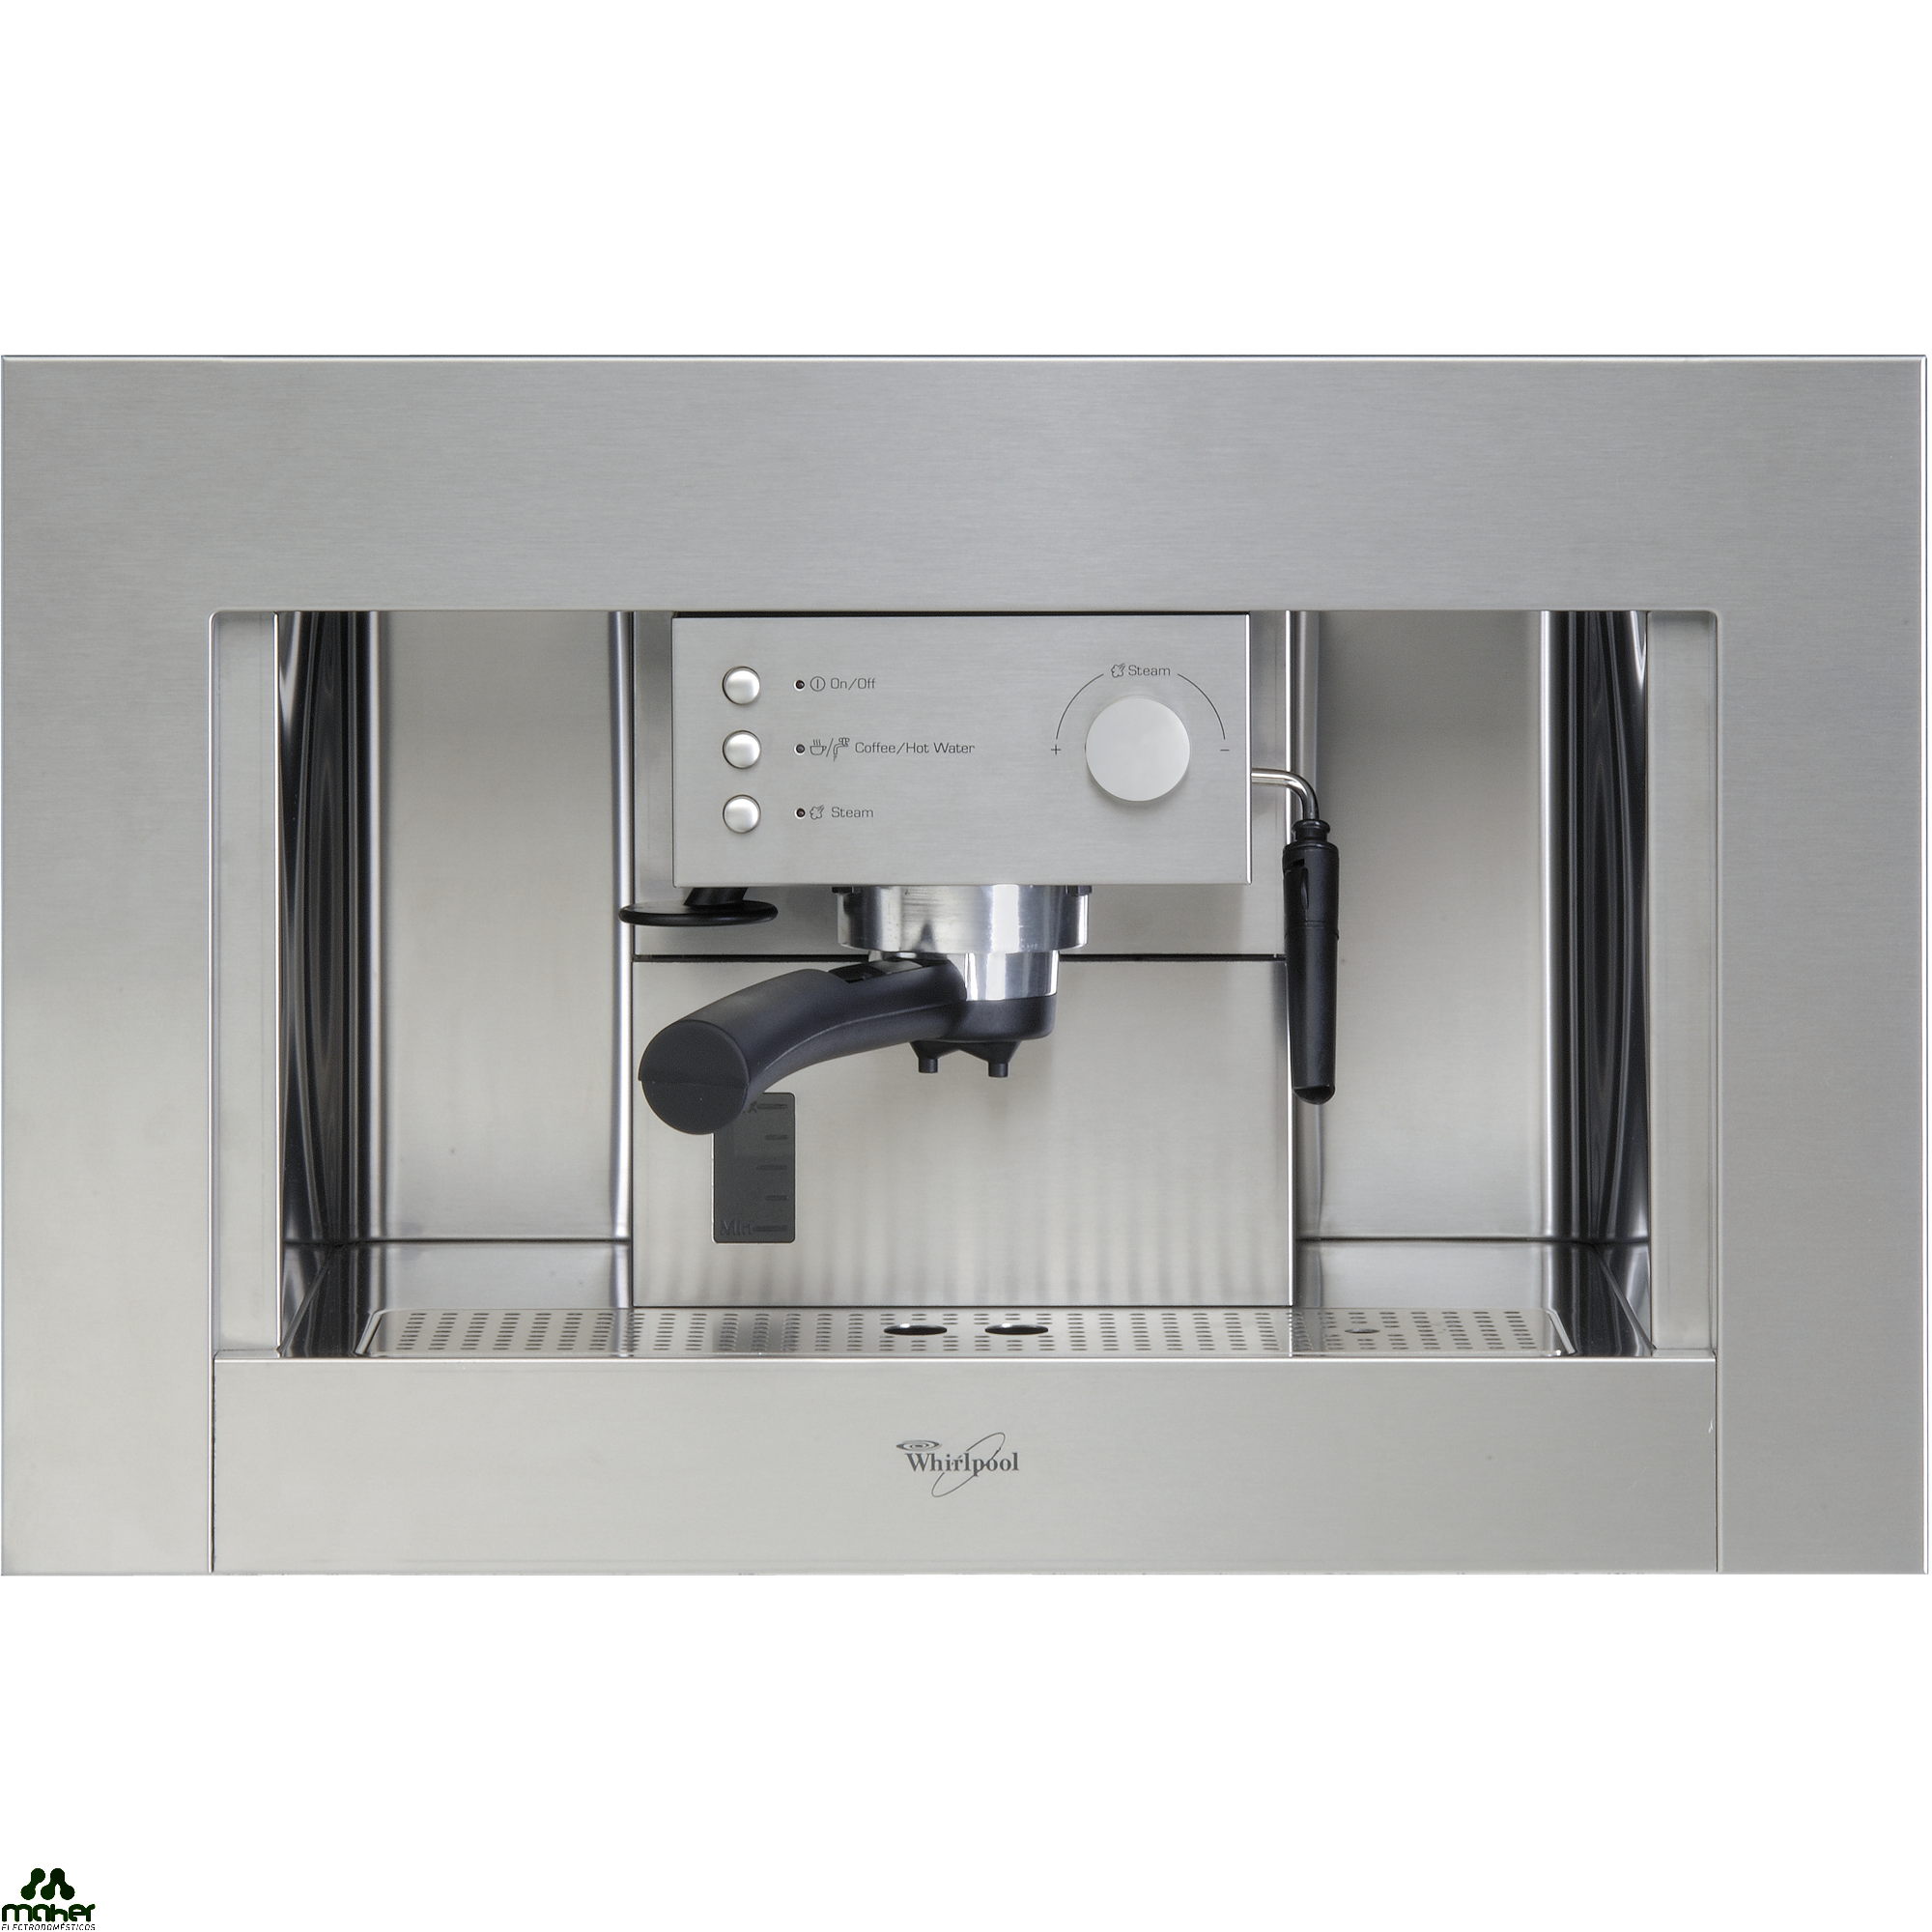 CAFETERA INTEGRABLE WHIRLPOOL ACE-010/IX